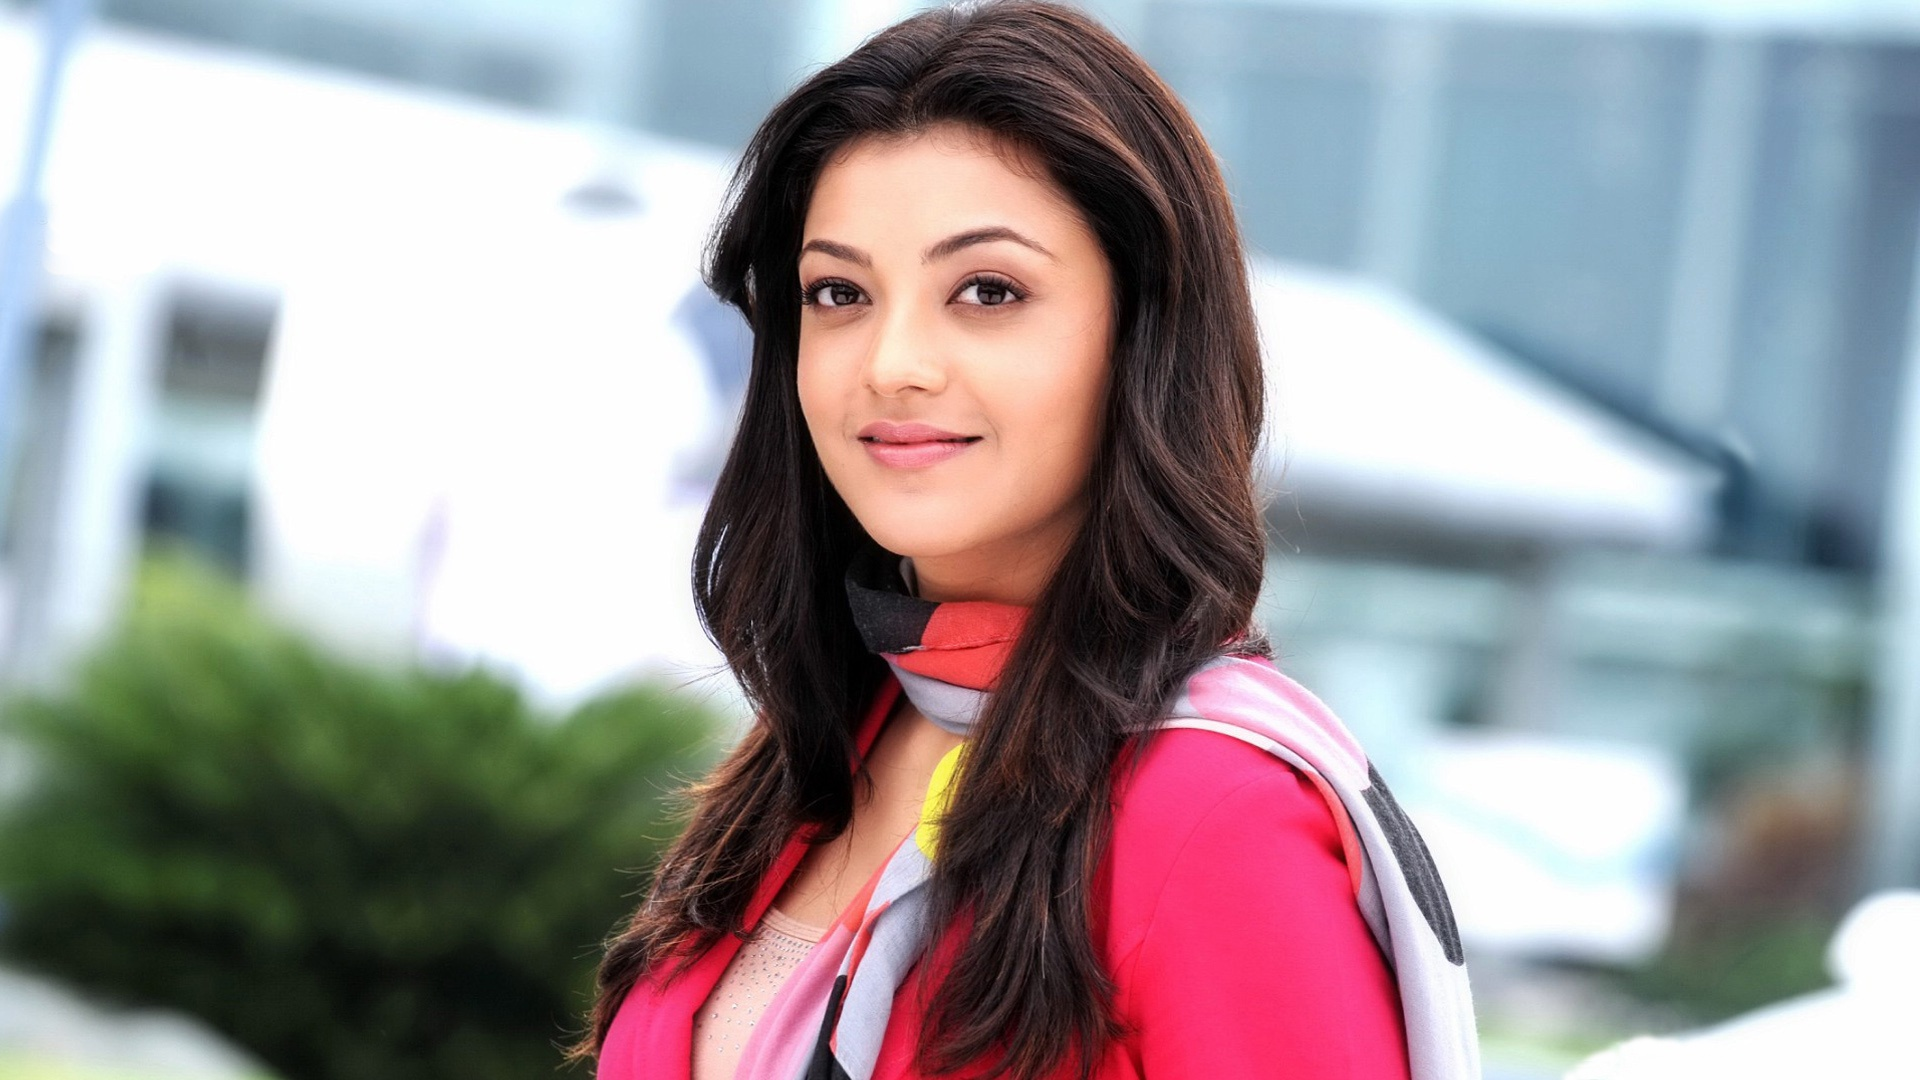 kajal agarwal cute hd wallpapers | hd wallpapers